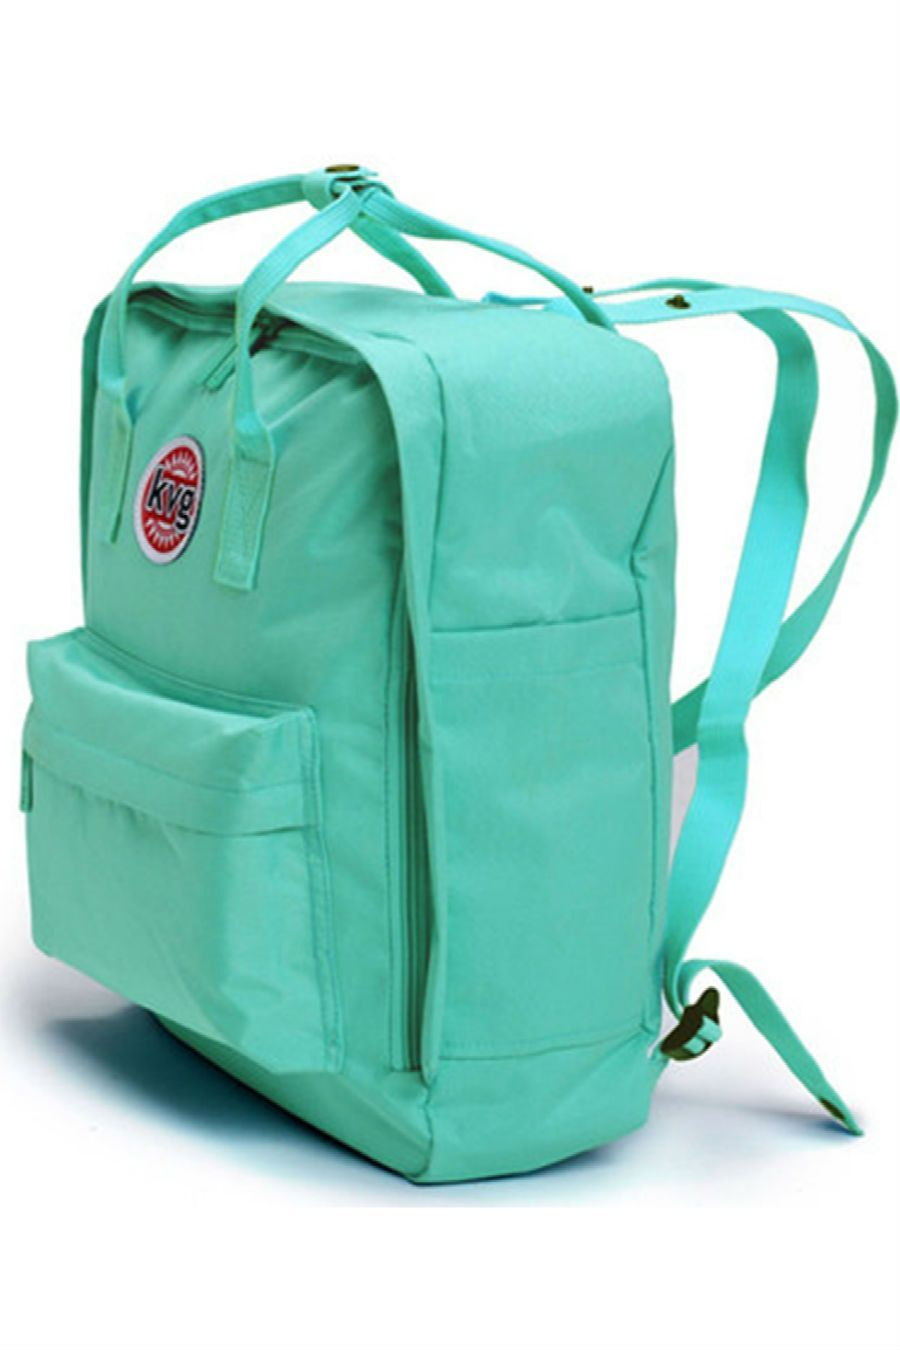 7df06eada747 Cute Mint College Style Backpack